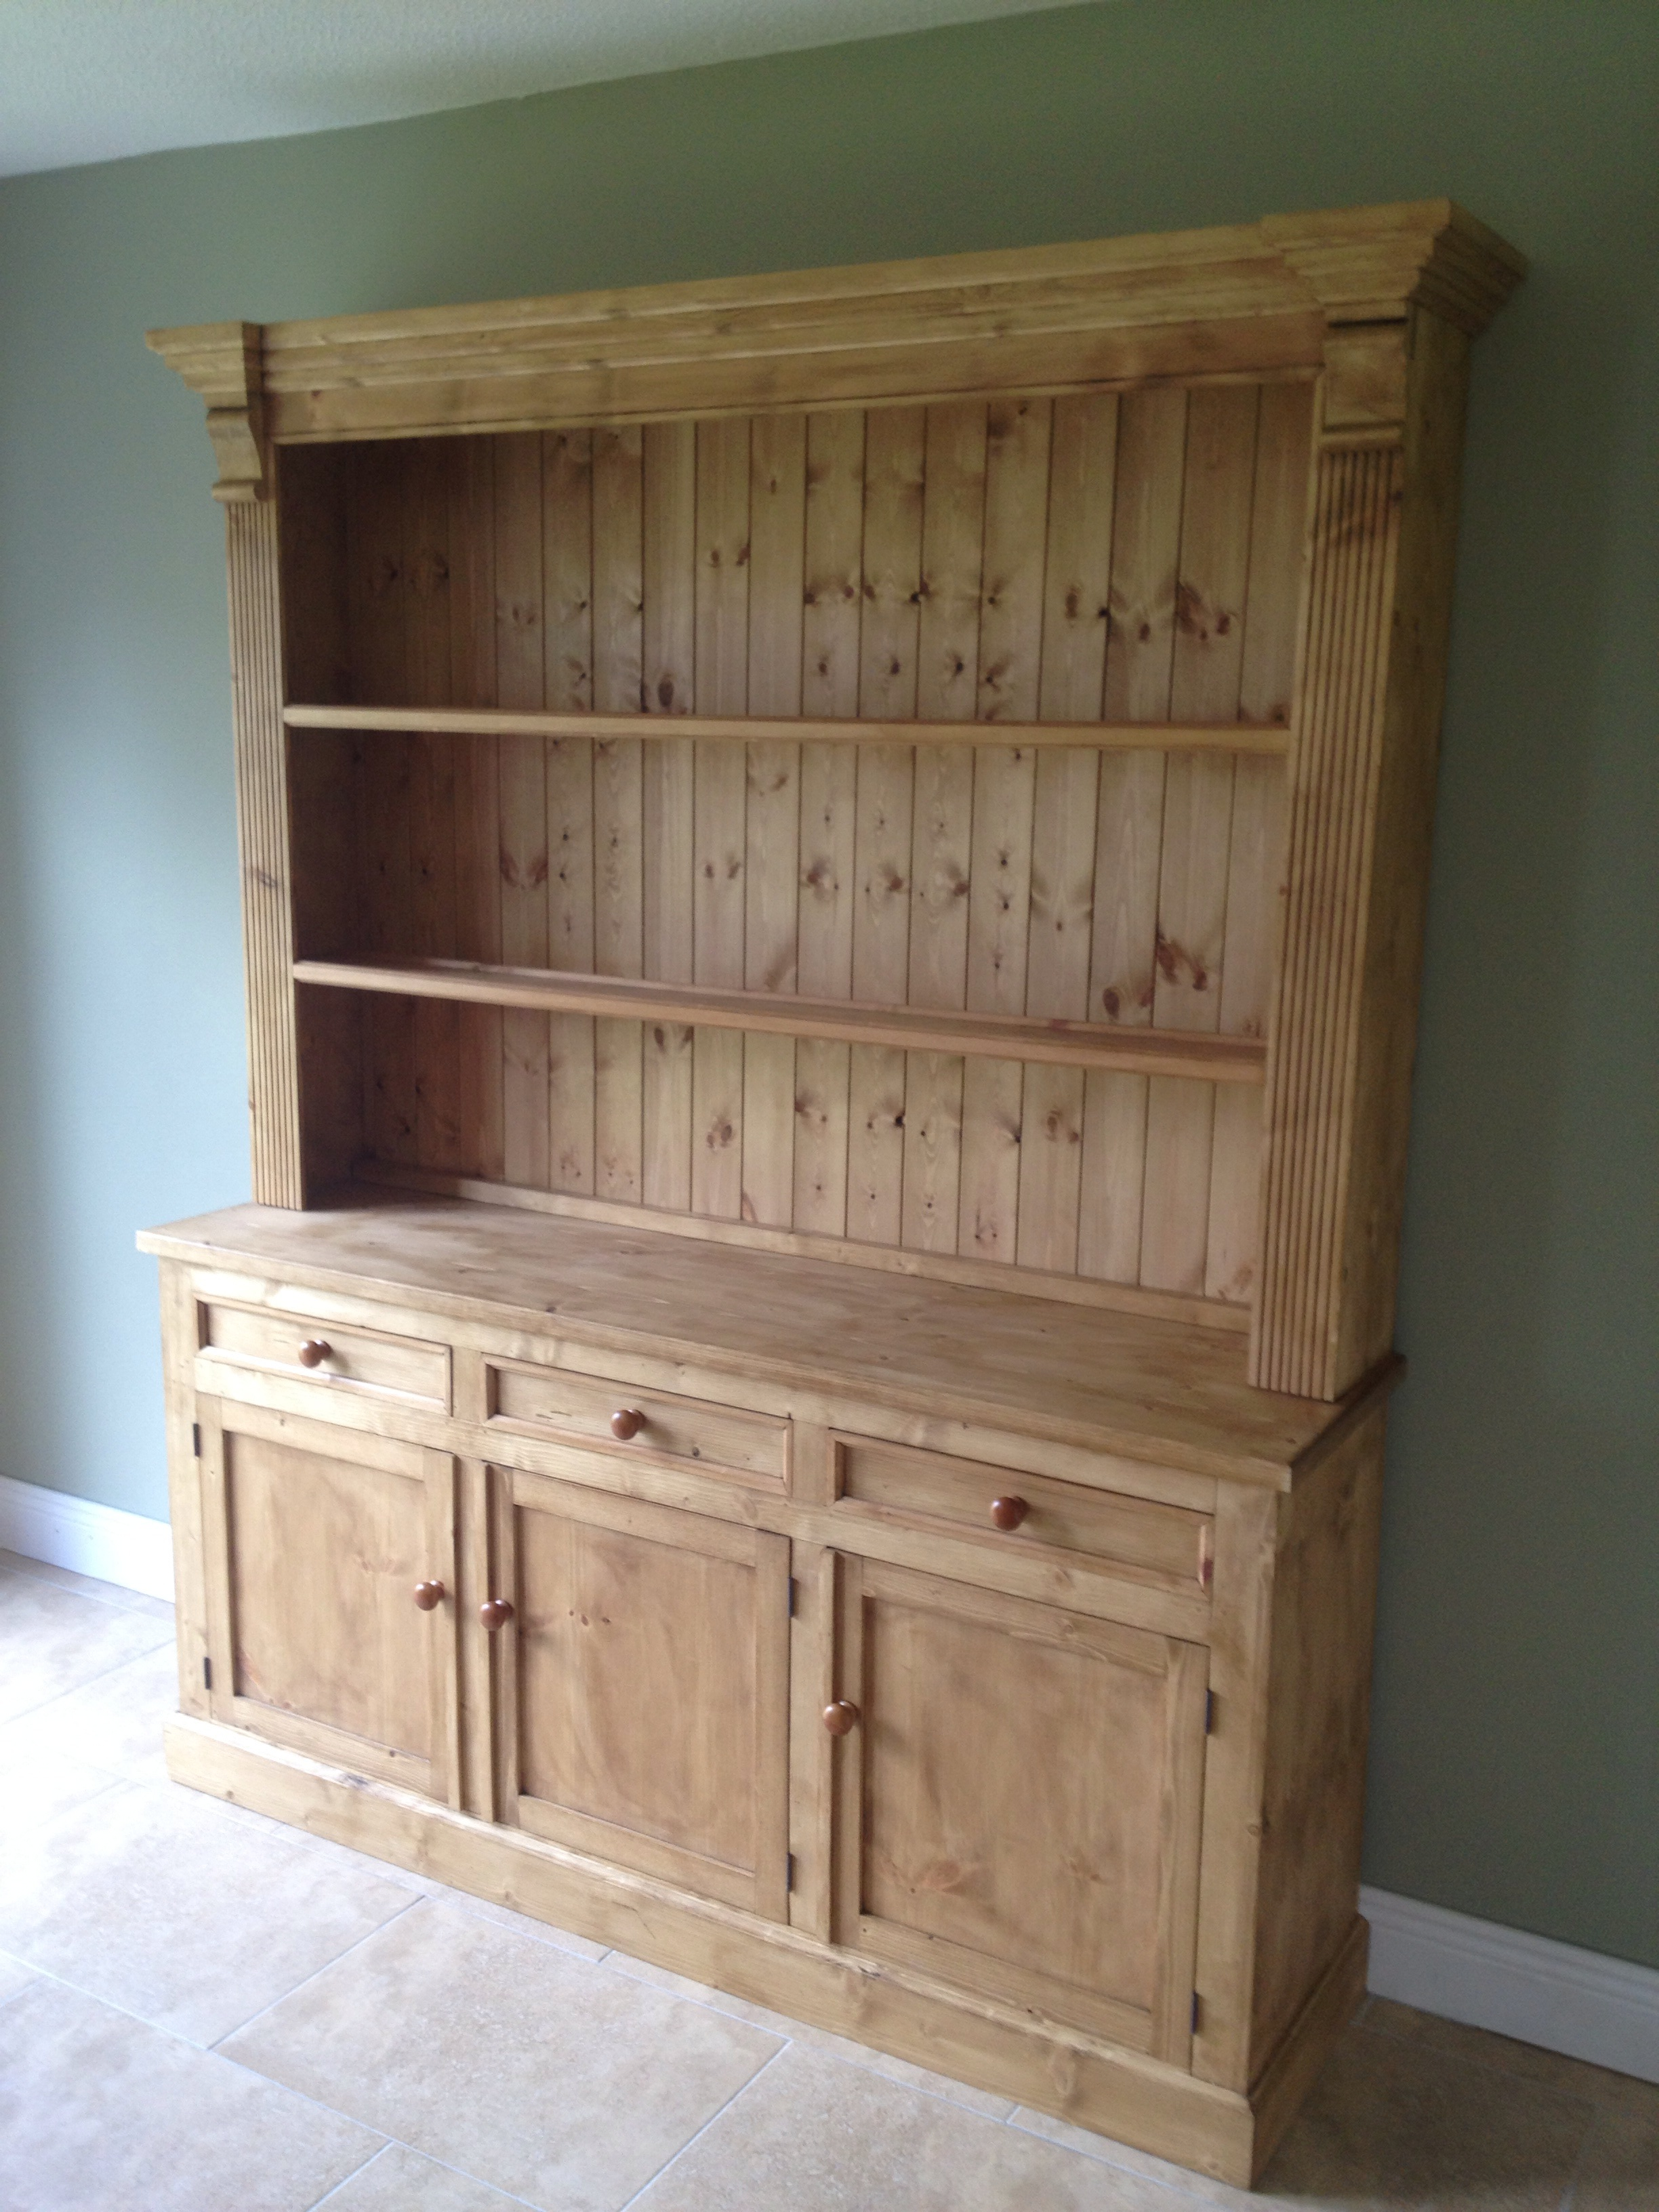 Irish Made Pine Furniture Any Design And Finish We Can